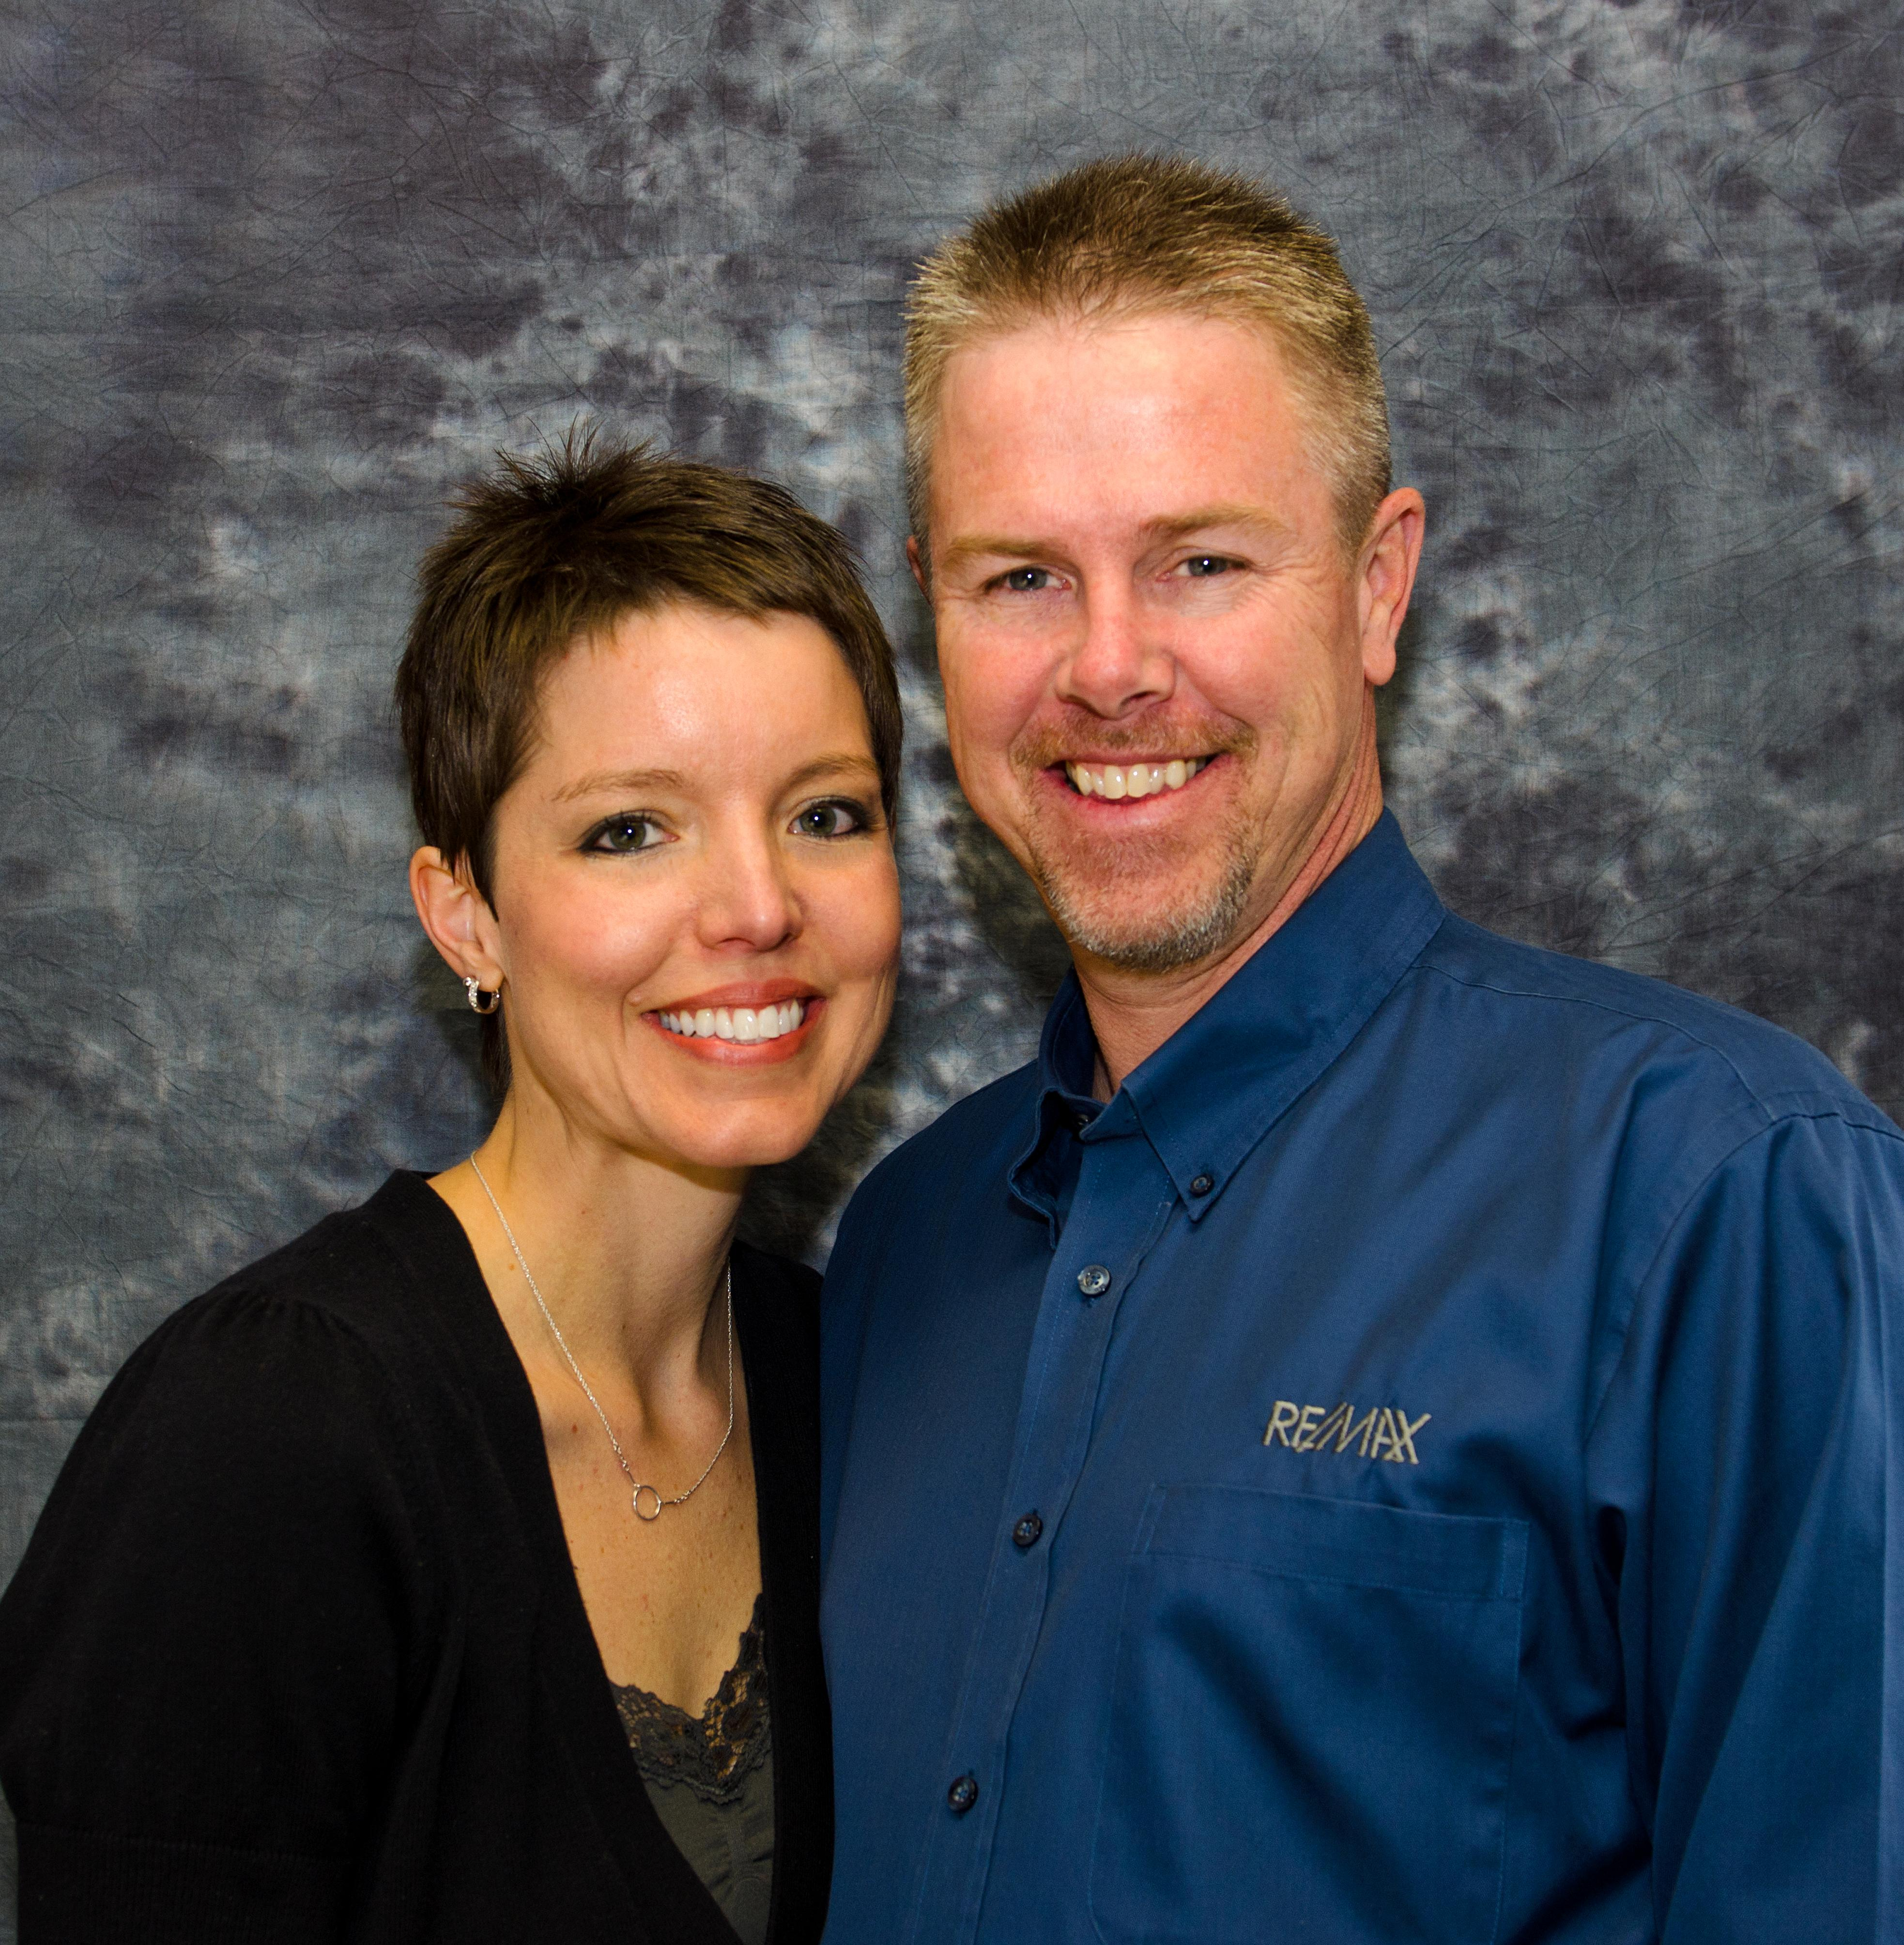 Greg and Kristi Stratman, Re/Max Mountain West